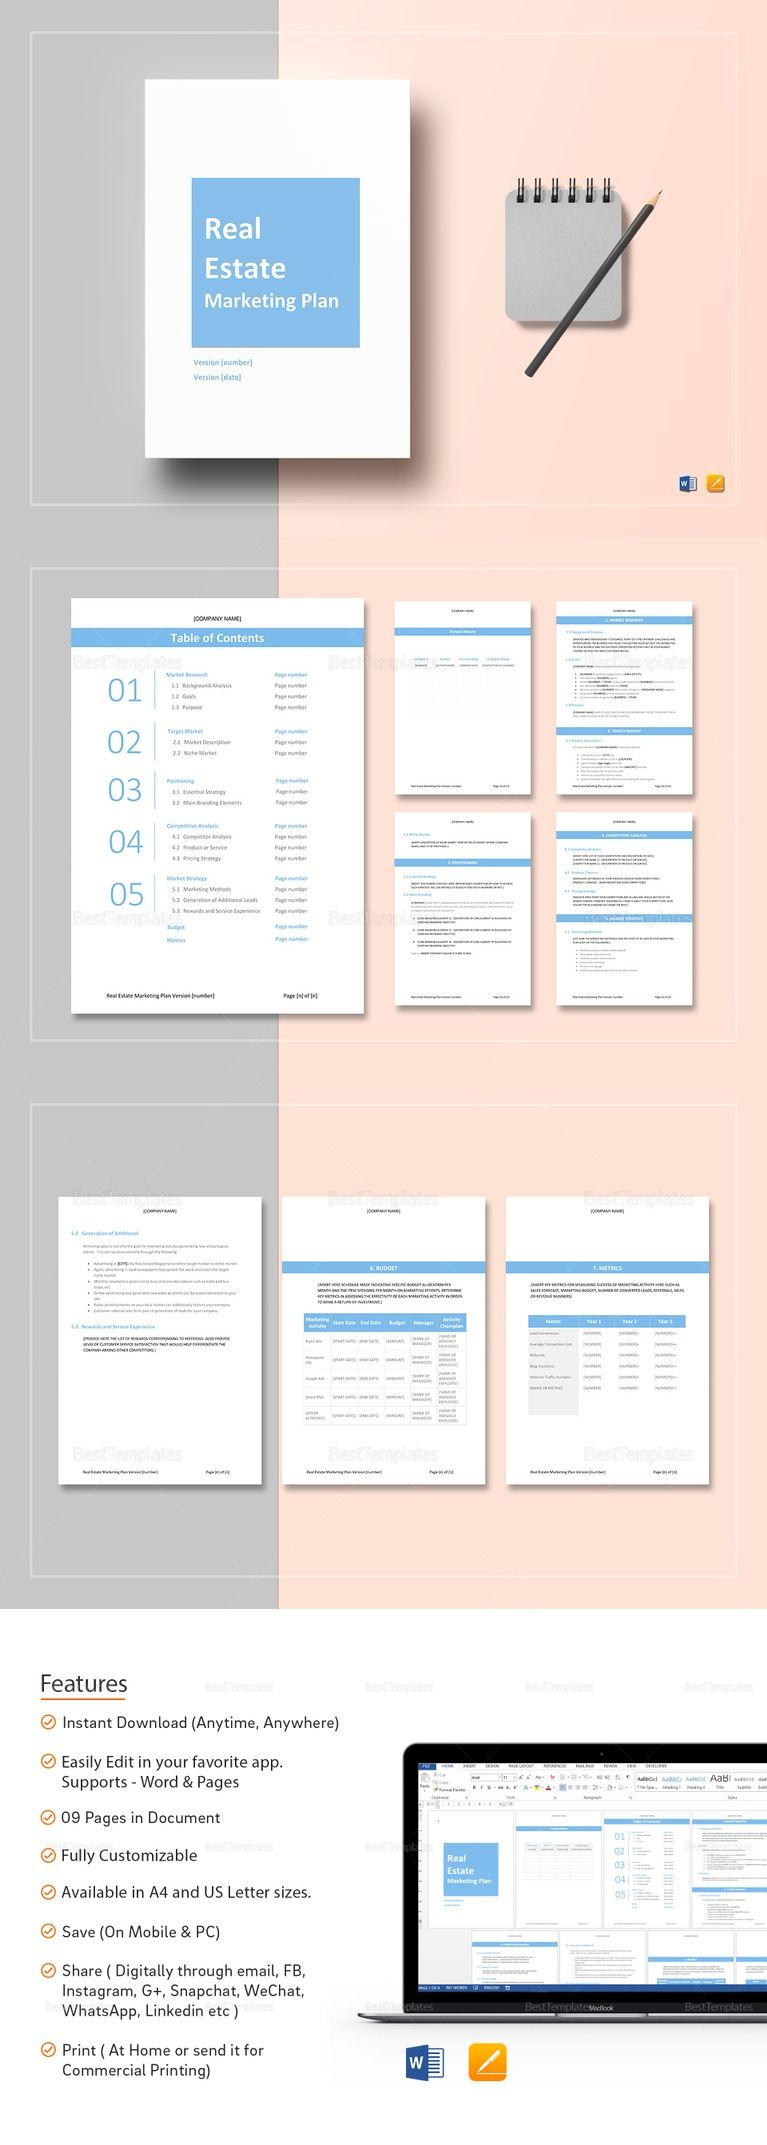 Real Estate Marketing Plan Template (With images